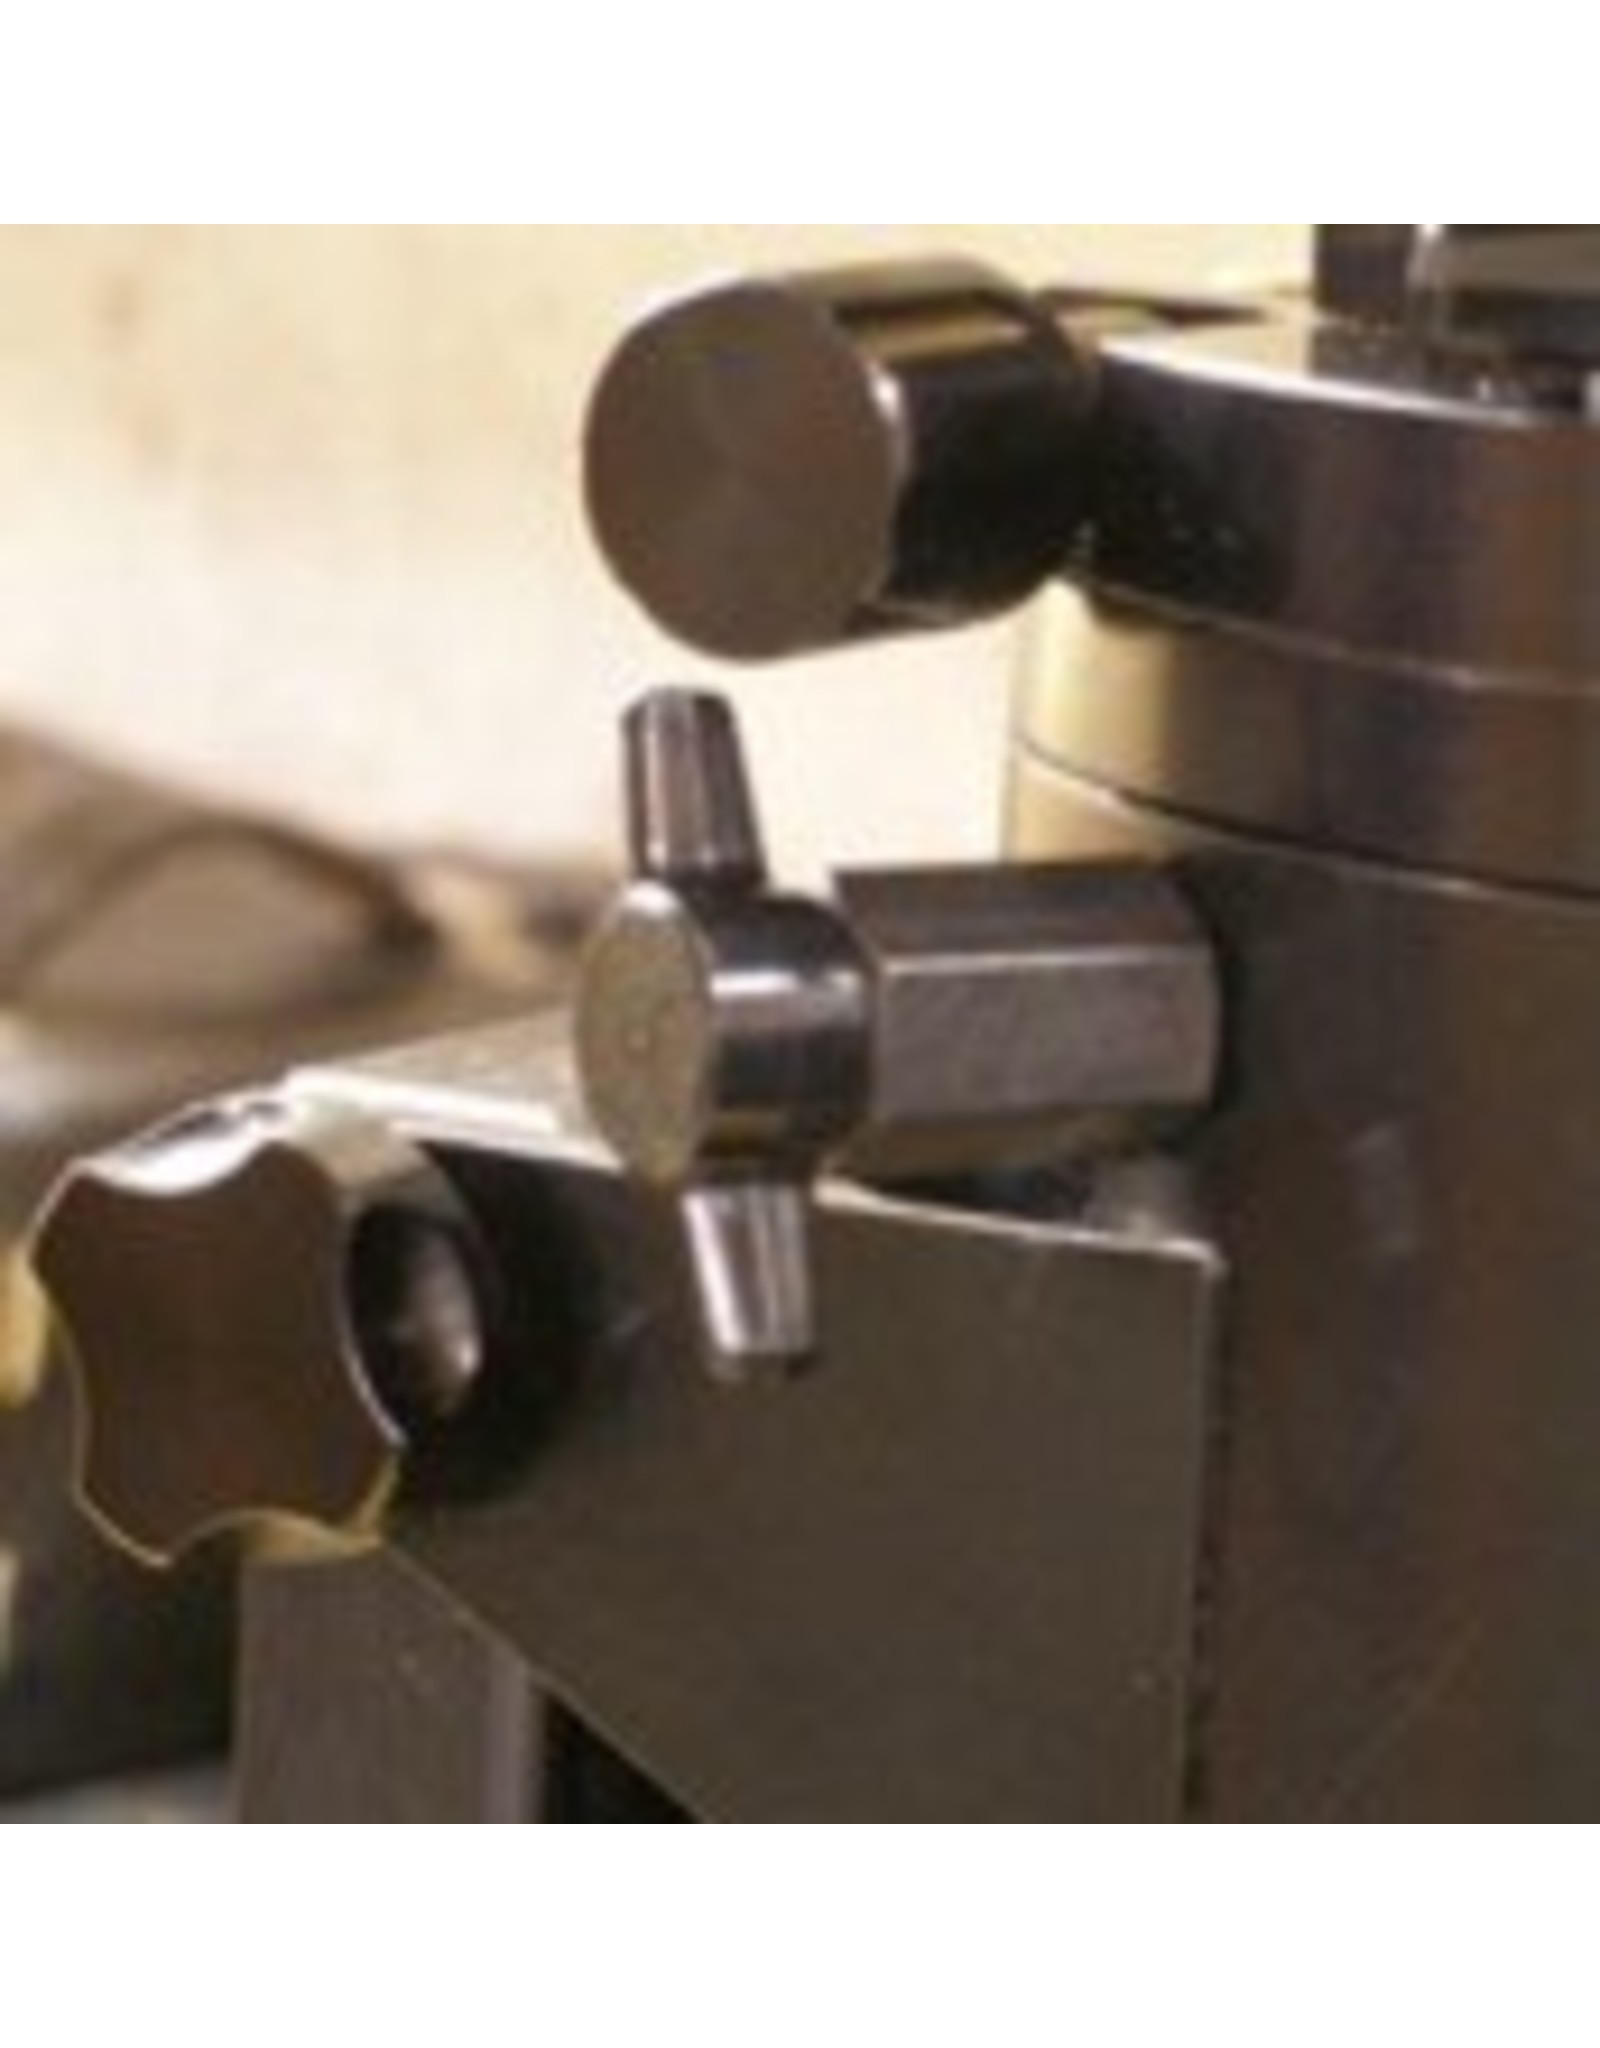 Bob's Knobs KNOBS FOR MOUNTING LOSMANDY GM-8 OR G-11 HEAD TO LOSMANDY UPPER TRIPOD SECTION